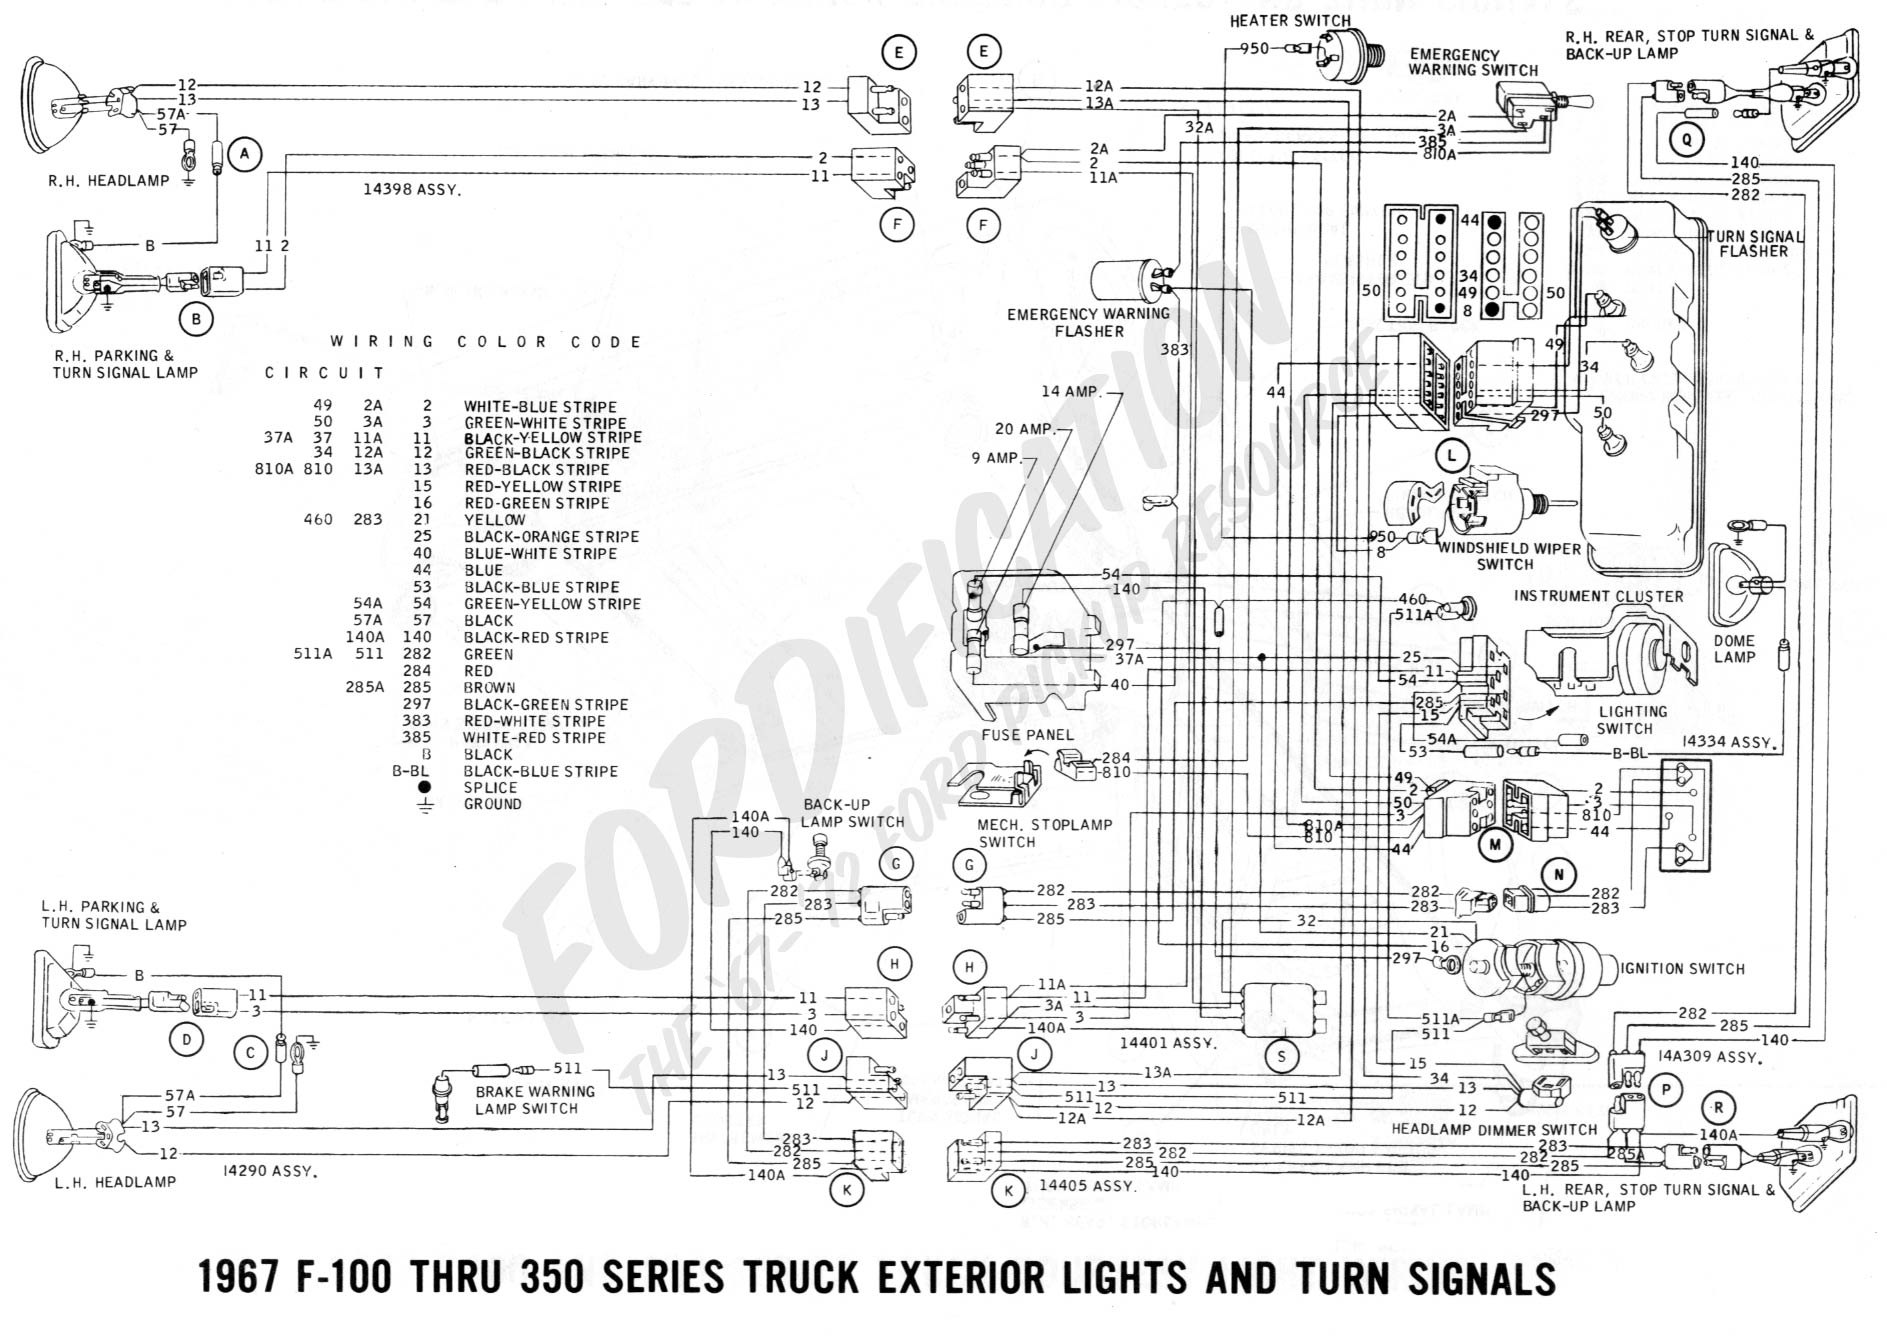 wiring 1967extlights02 1990 f700 wiring diagram dodge ram alternator wiring diagram 1984 ford f700 wiring diagram at edmiracle.co